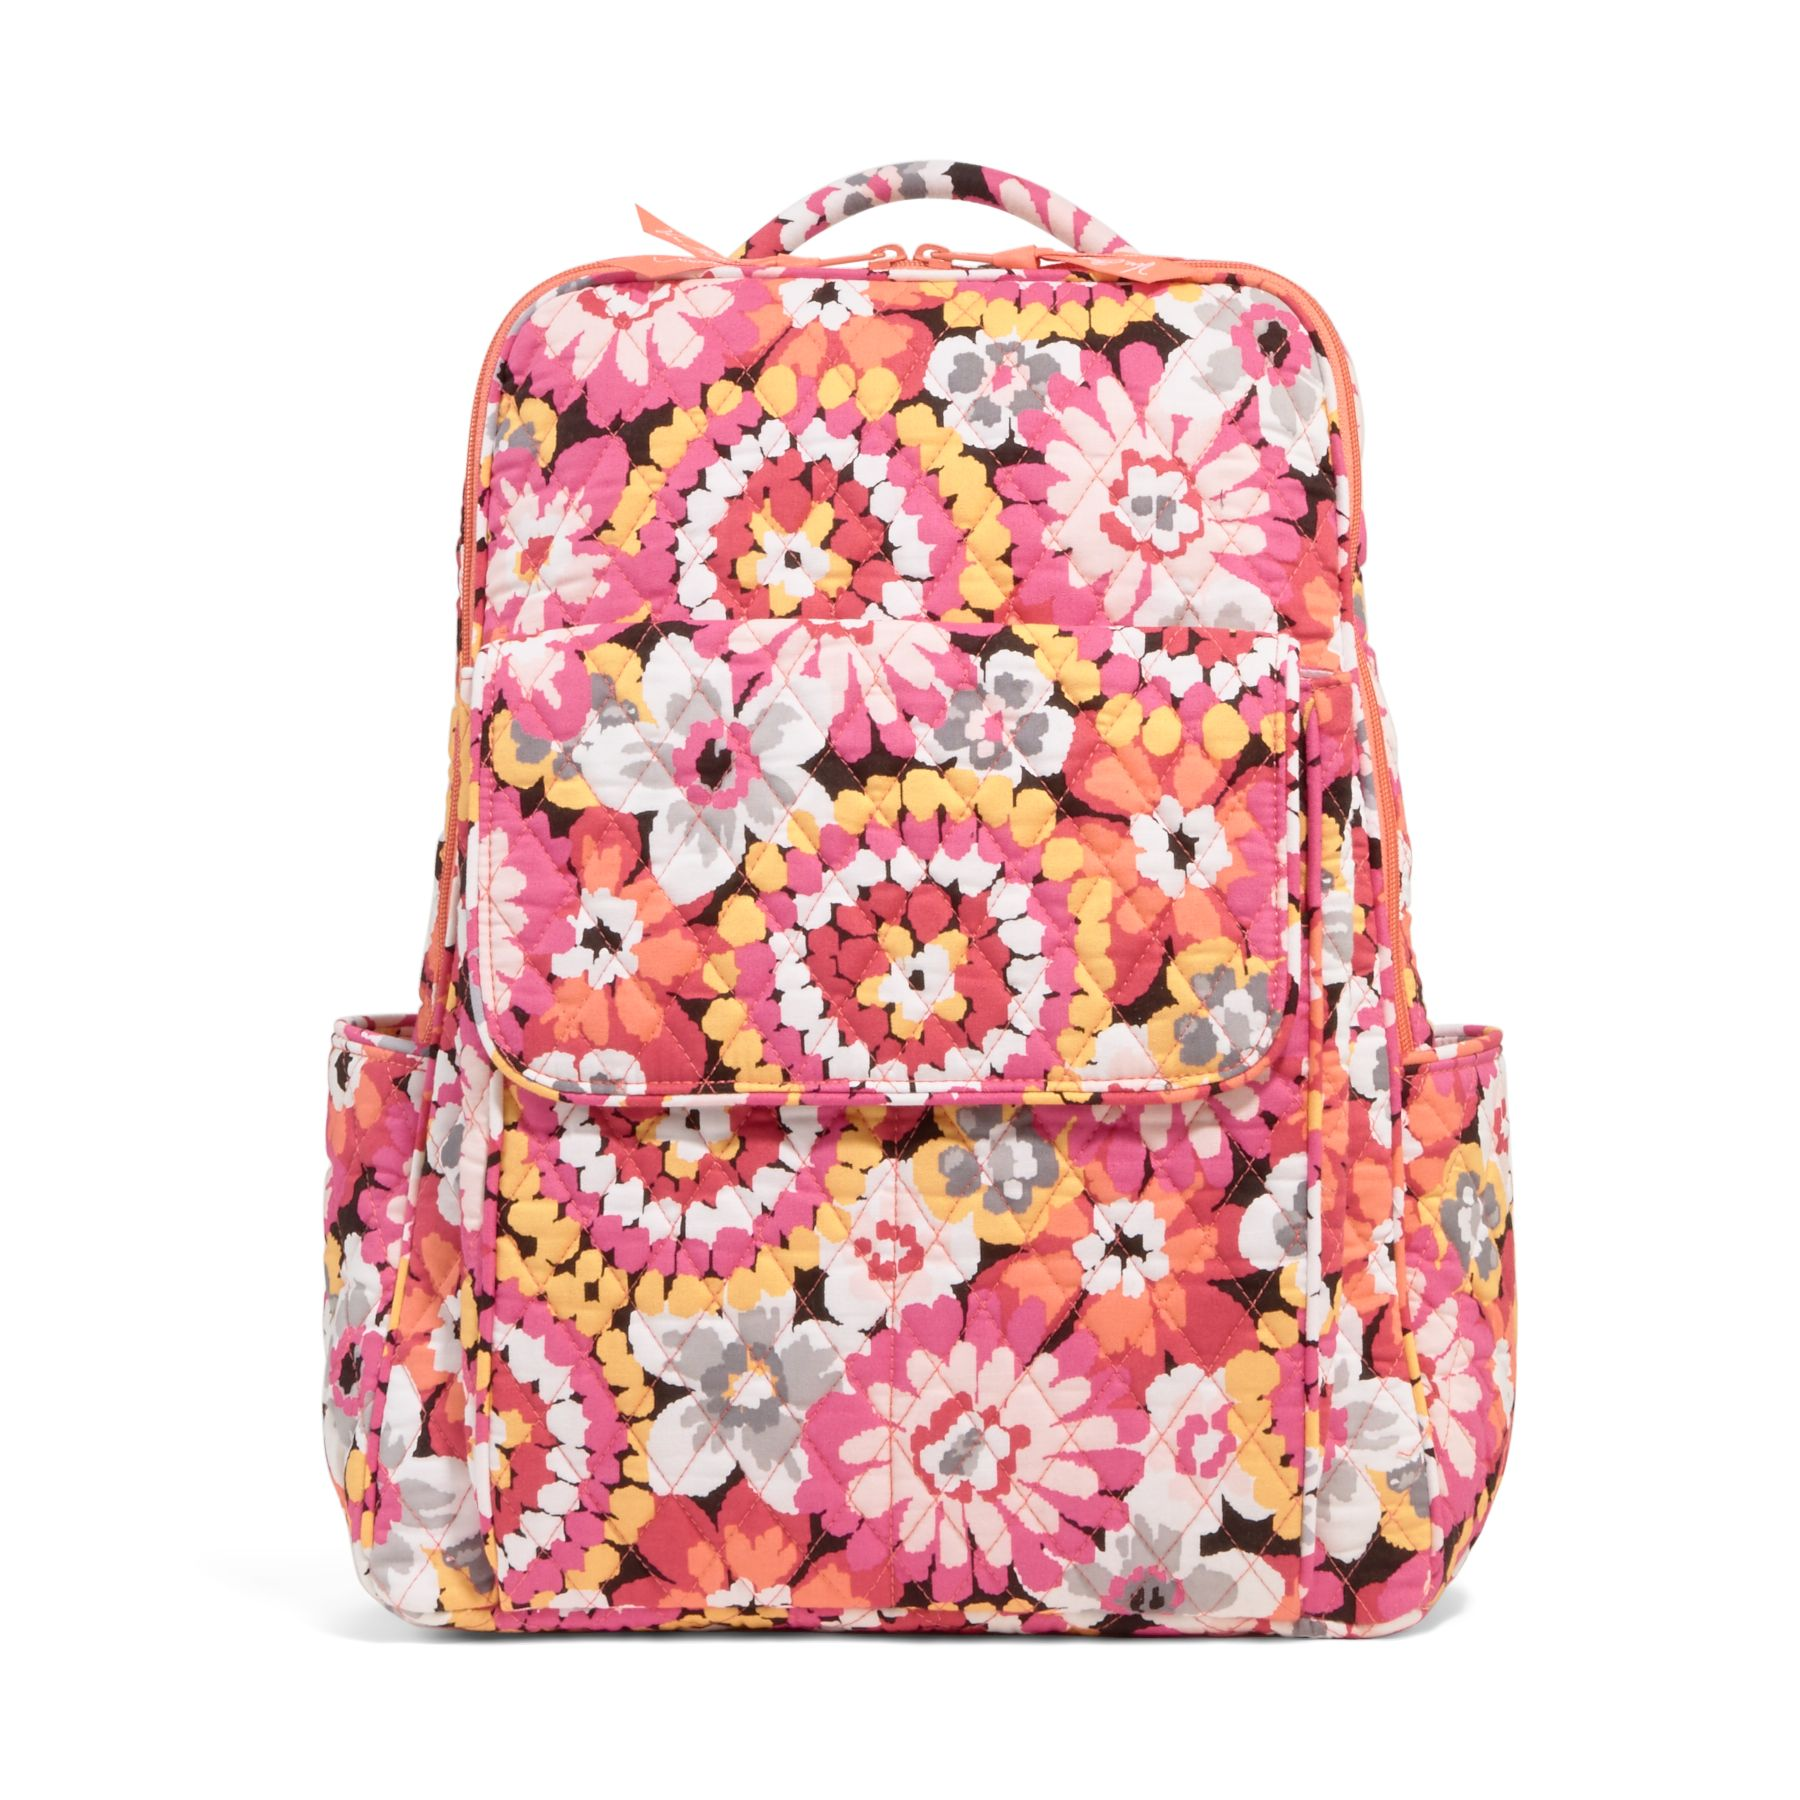 Buy Vera Bradley Large Duffel Bag (African Violet with Violet Interior) and other Travel Totes at orimono.ga Our wide selection is eligible for free shipping and free returns.